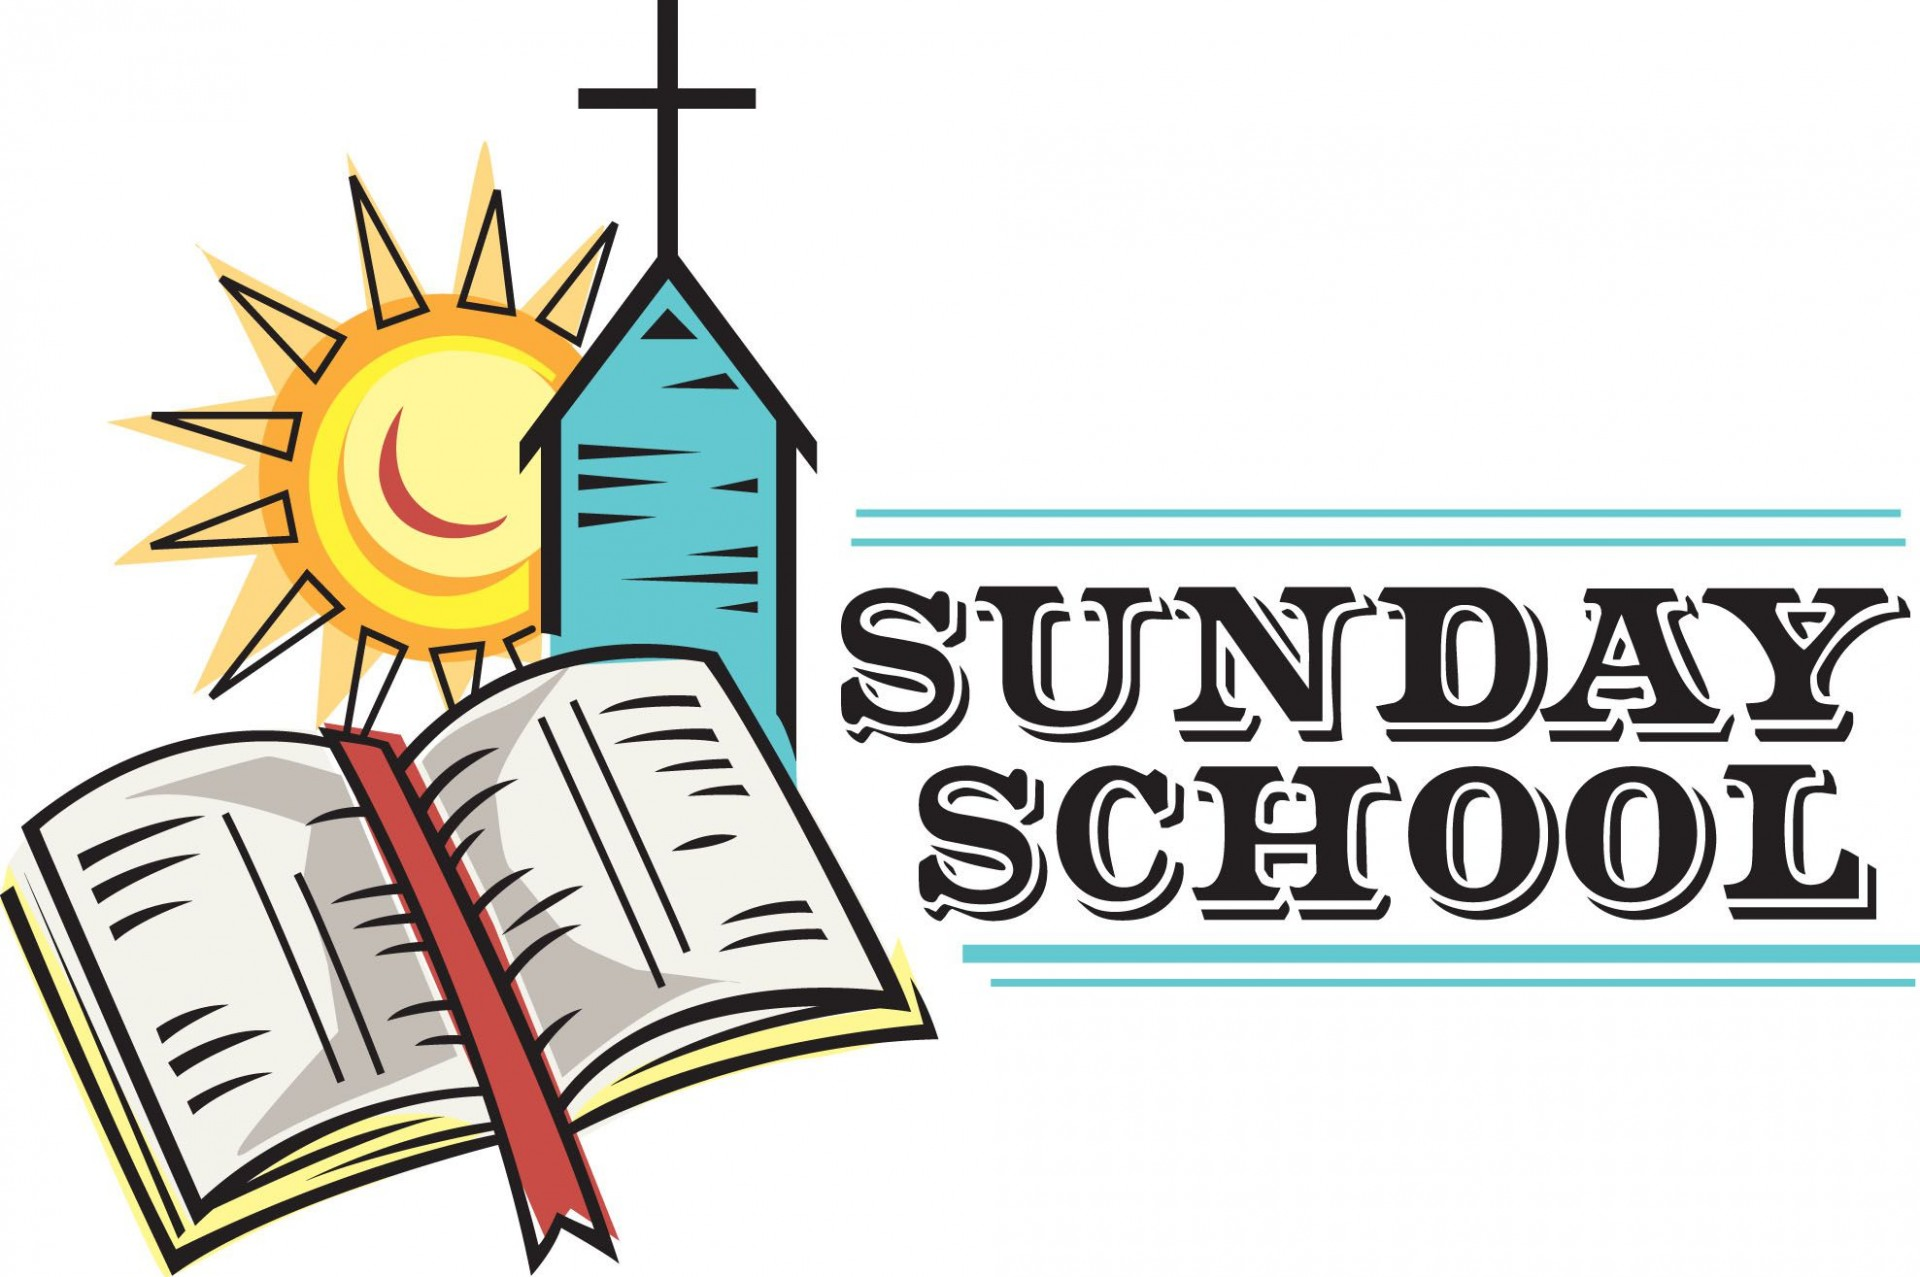 009 Frightening Free Sunday School Flyer Template Picture  Templates1920